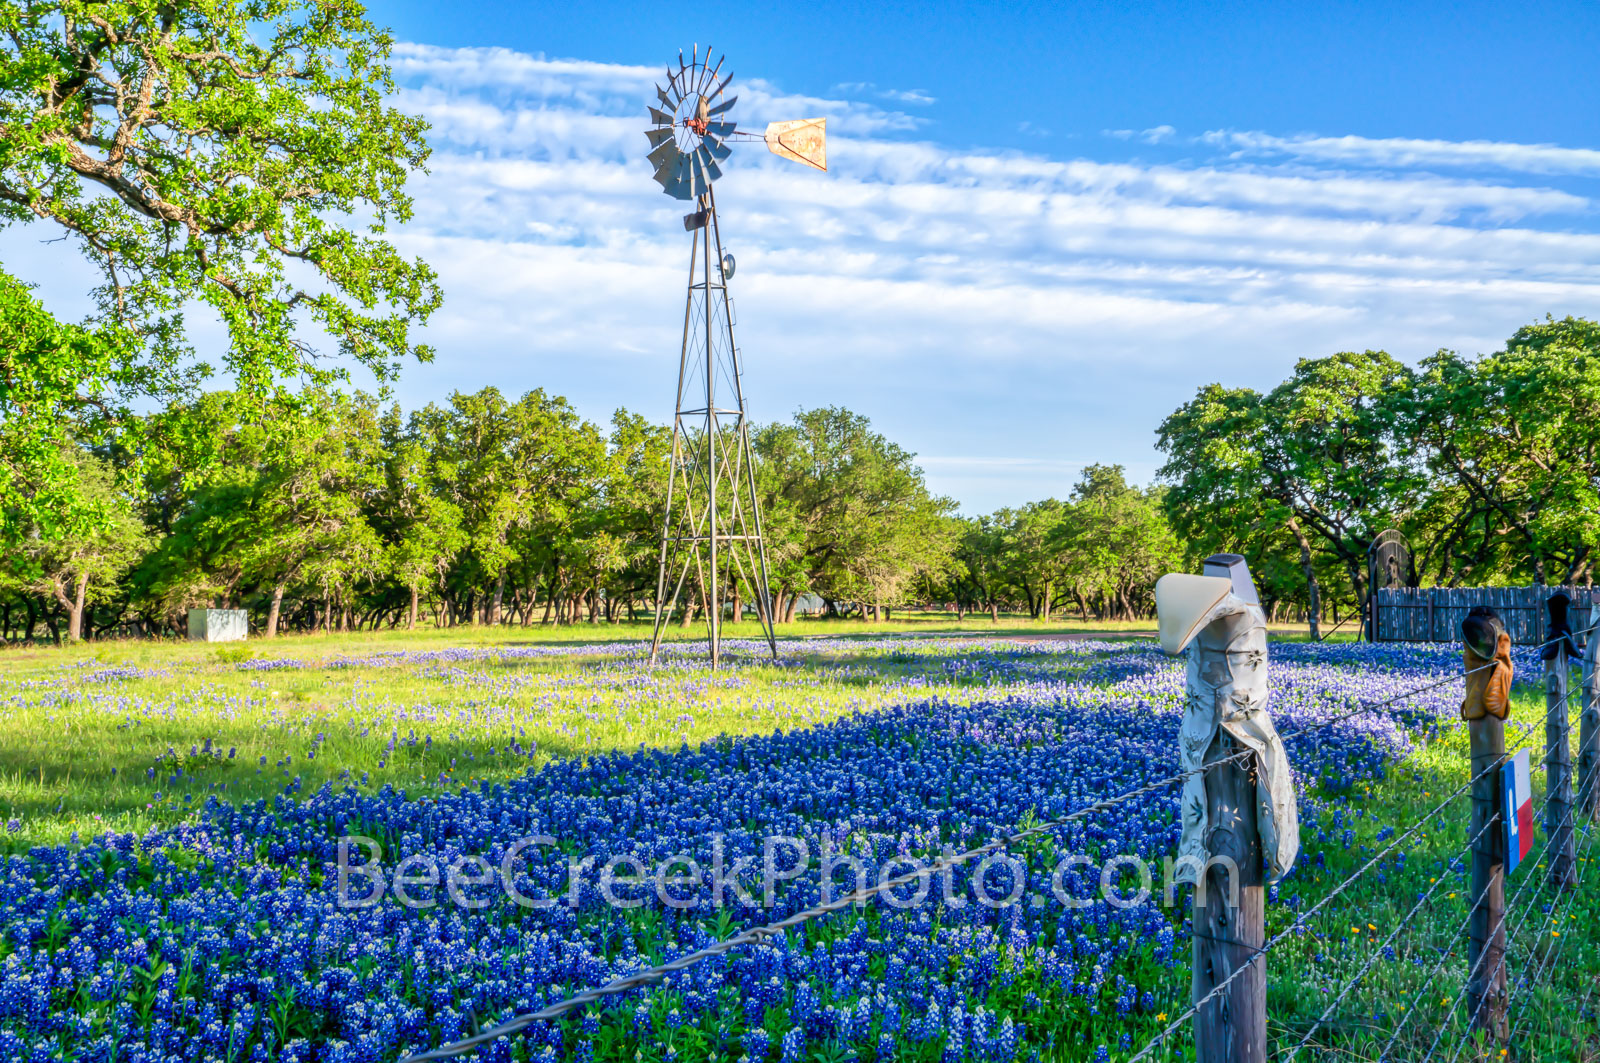 texas windmill, bluebonnets, texas bluebonnets, texas wildflowers, blue bonnets, texas scenery, texas landscape, windmills in texas, texas wildflower landscape, texas hill country, hill country, lupin, photo